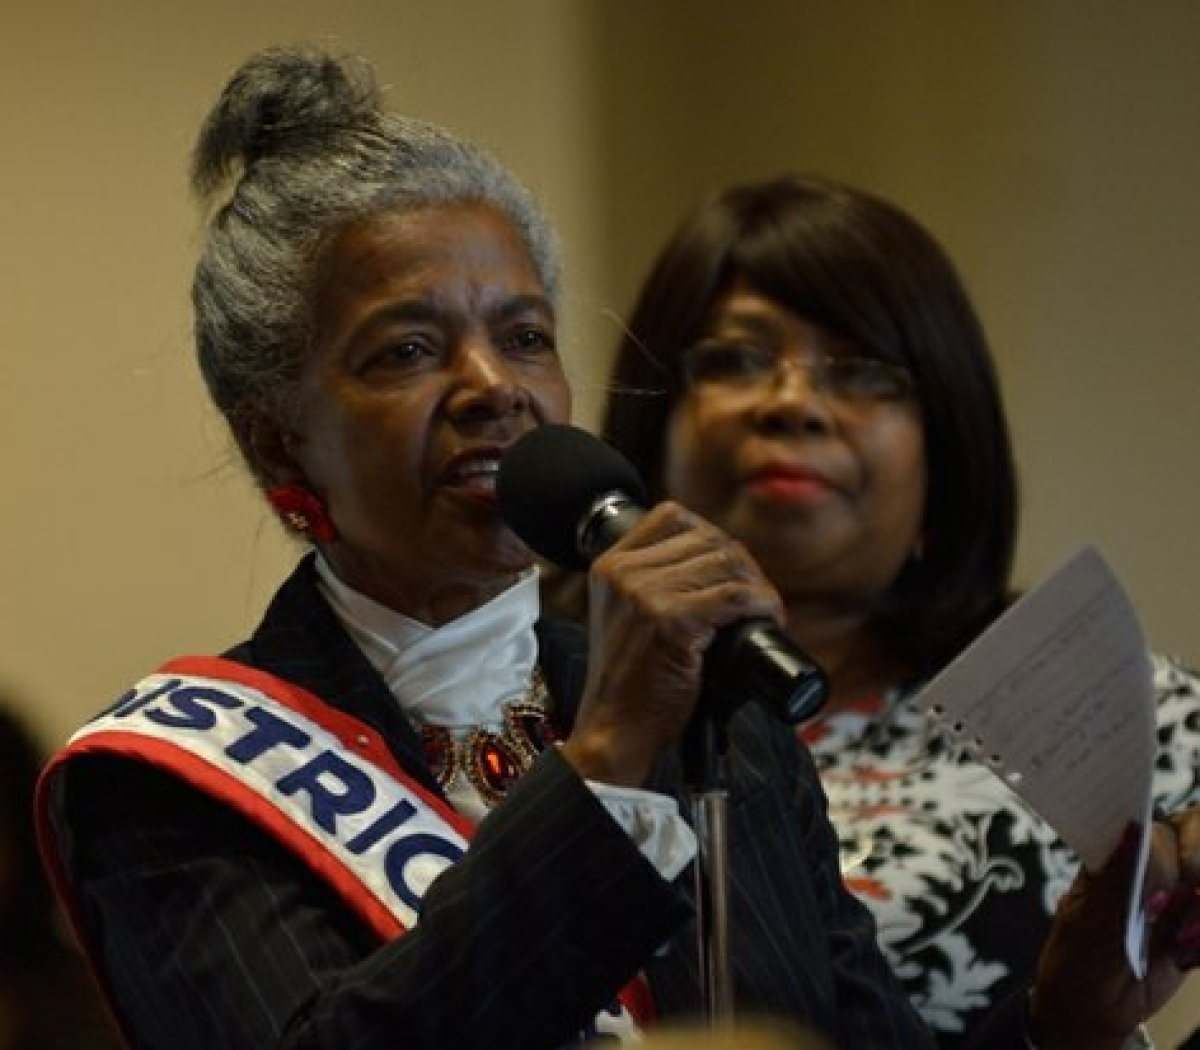 A member of the audience asks a question regarding the elderly and voting during the Sixth Annual Stateswomen for Justice Luncheon at the National Press Club, Thursday, March 31, 2016 in Northwest. /Photo by Patricia Little @5feet2